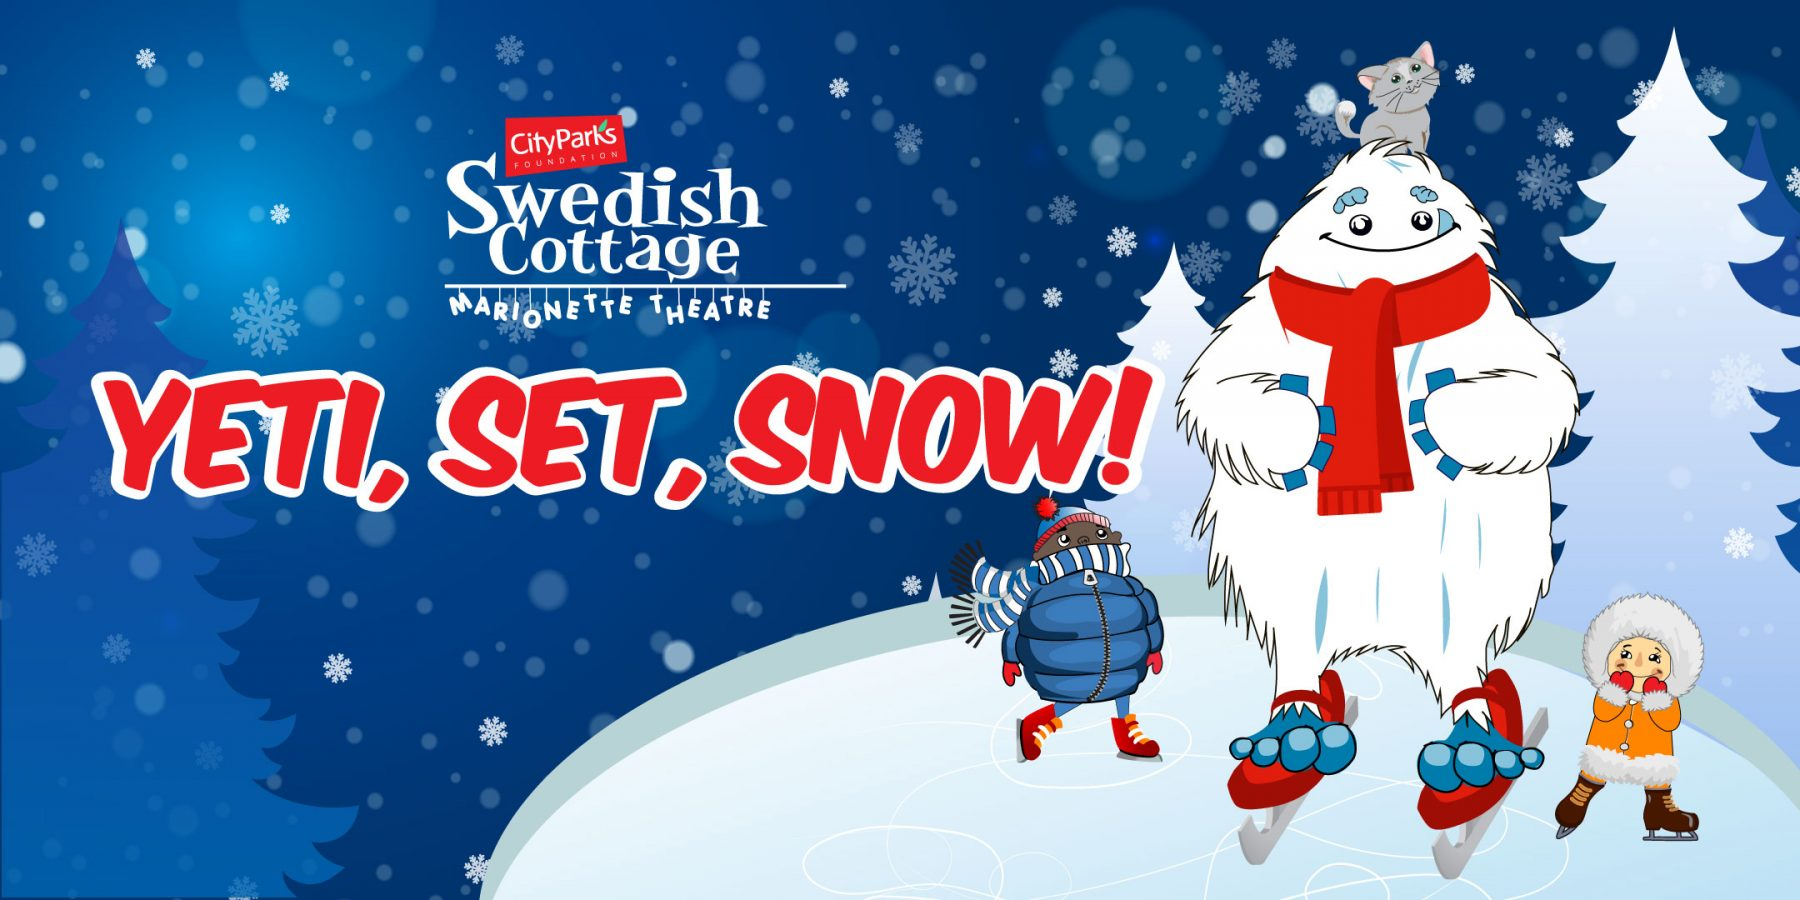 Yeti, Set, Snow at Swedish Cottage Marionette Theatre